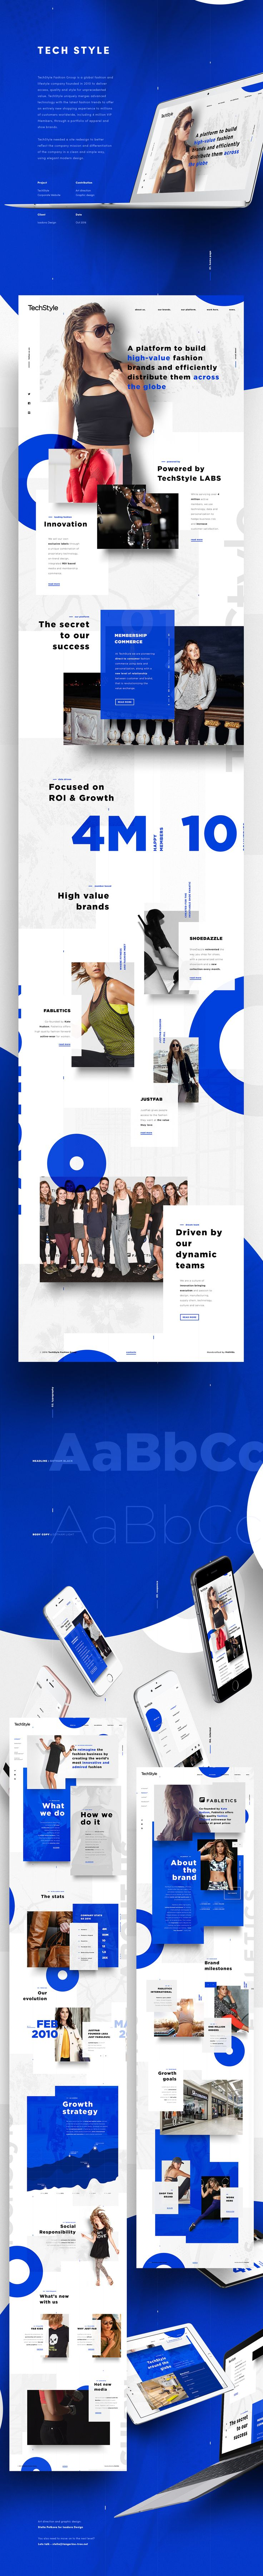 Art direction and graphic design for the new TechStyle Fashion Group corporate website.  By Stella Petkova